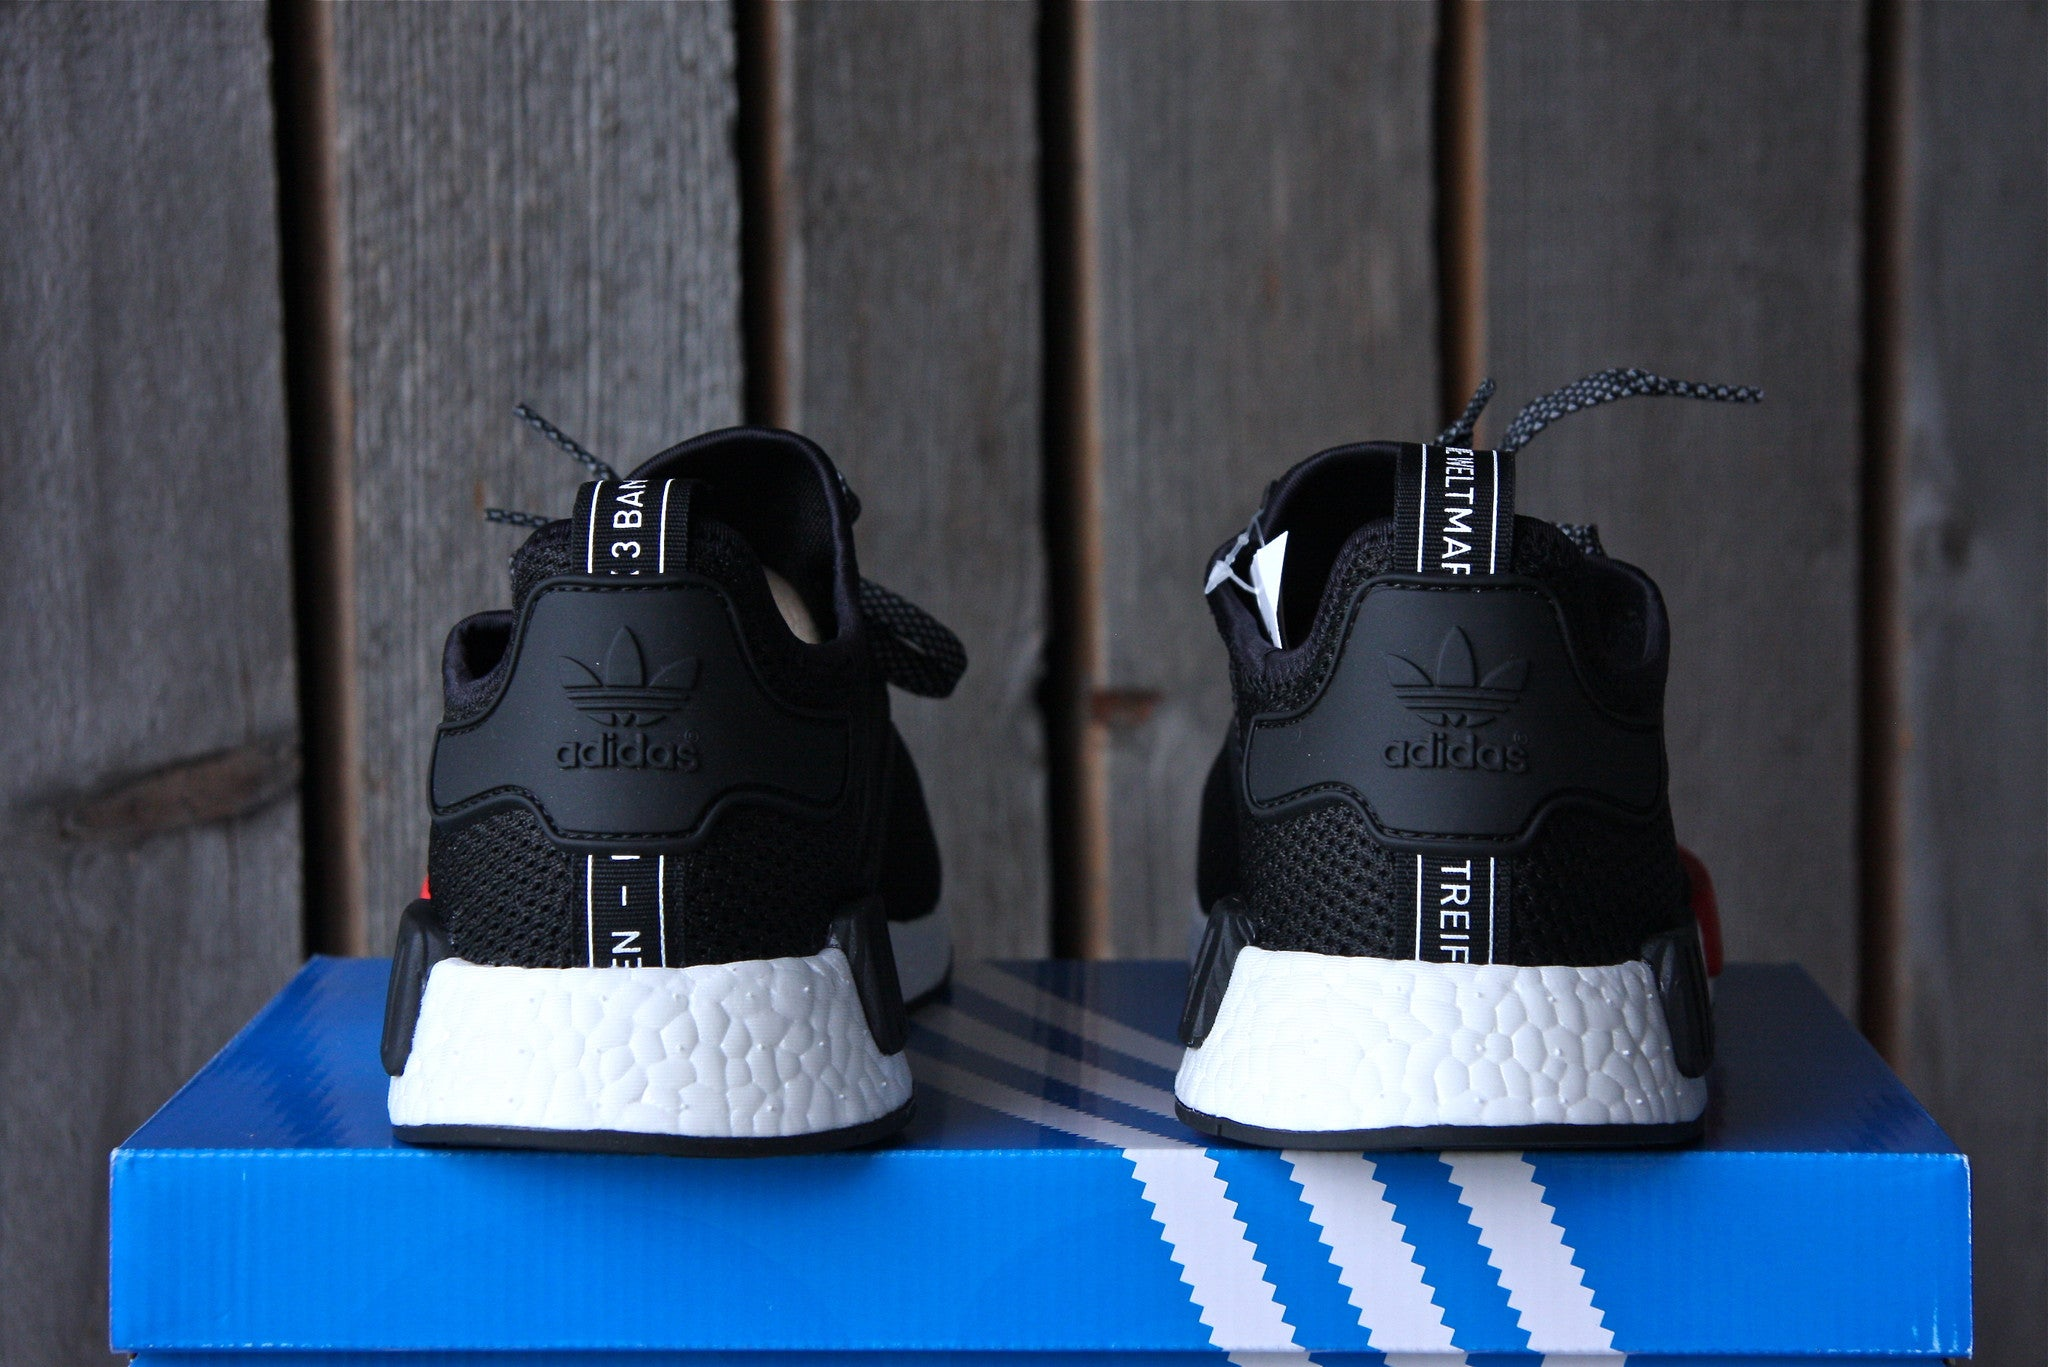 Adidas NMD R1 Footlocker Exclusive (Black)